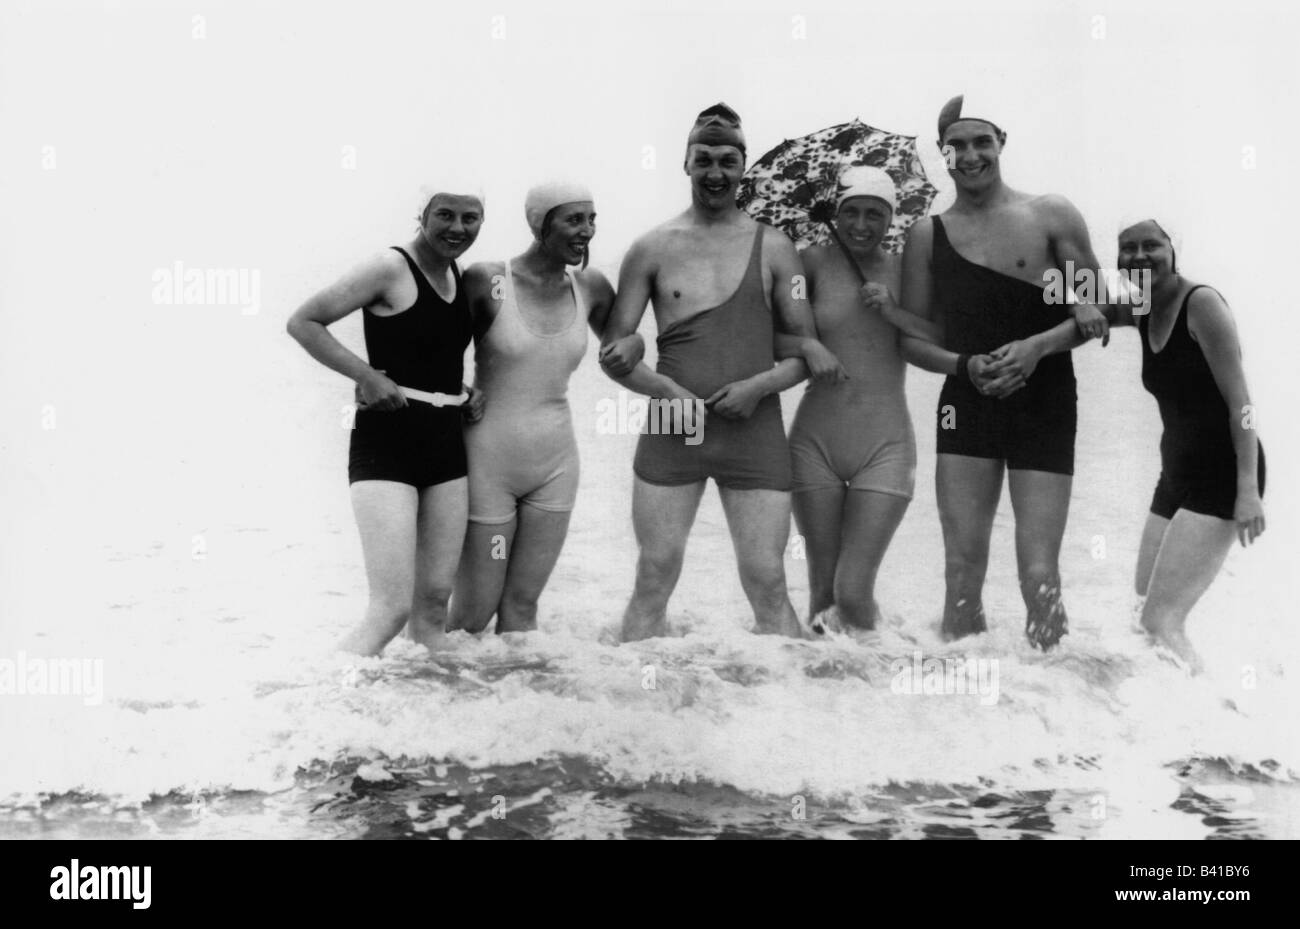 bathing, beach fashion, group of young people in swimsuits, 1920, Additional-Rights-Clearances-NA Stock Photo